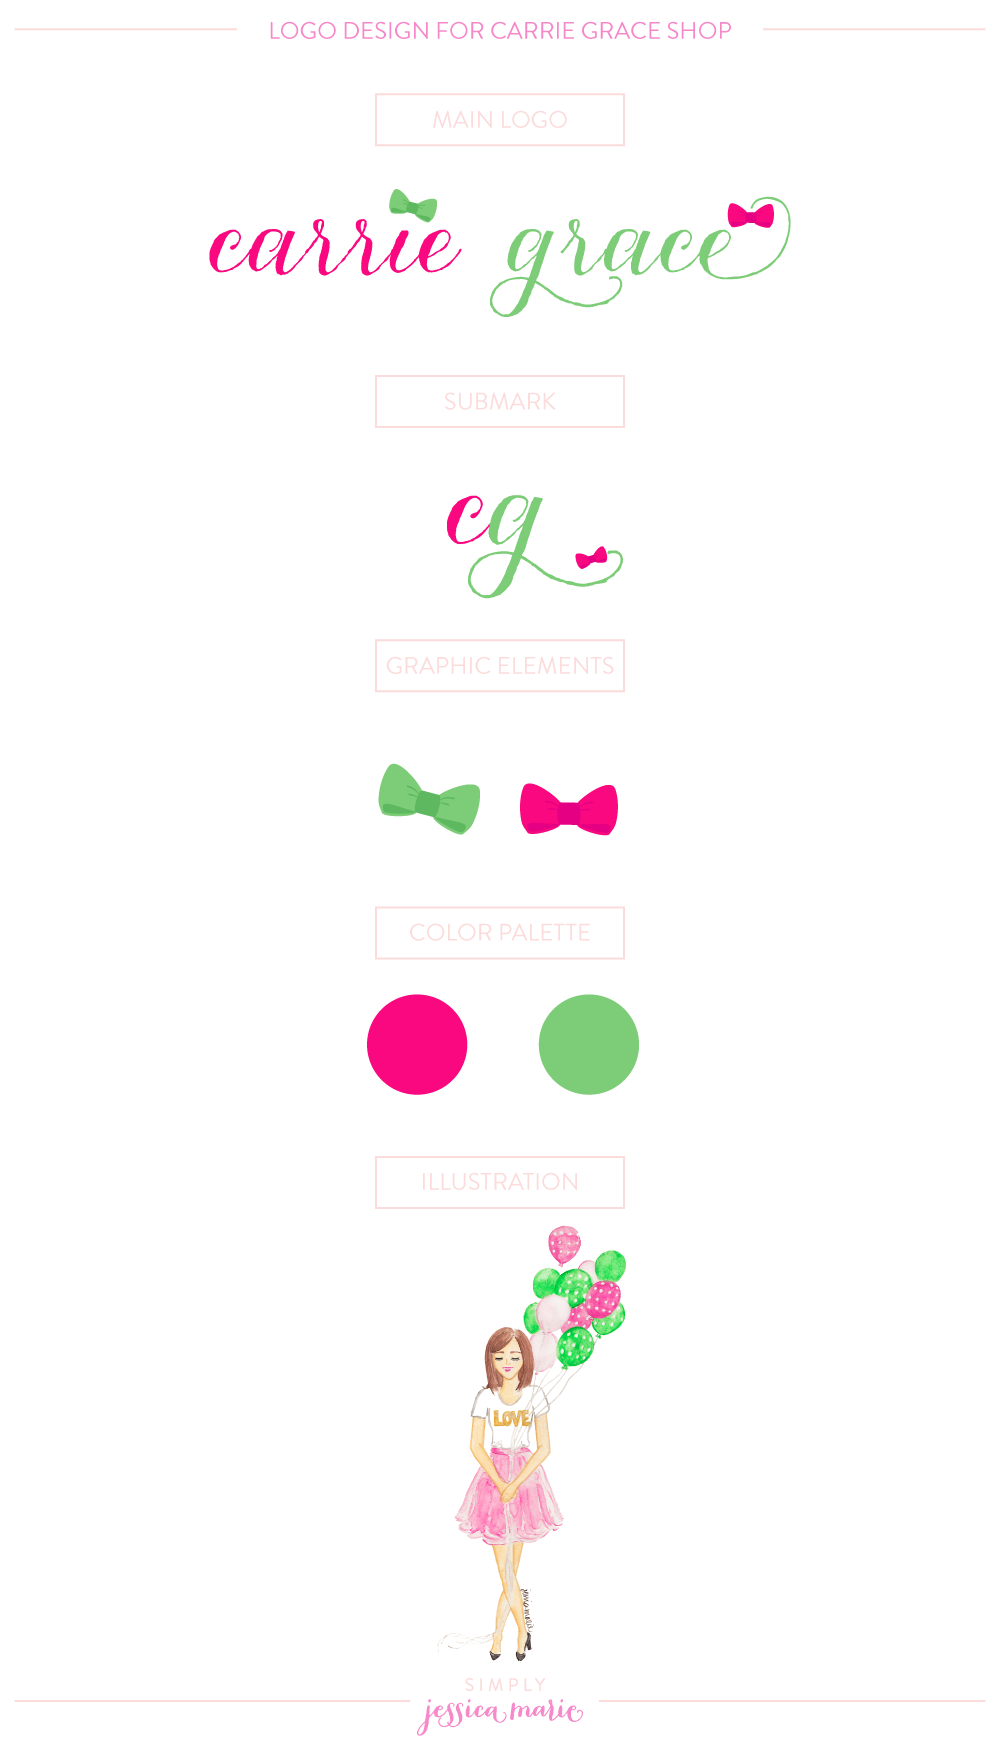 Custom Preppy Logo Design for Carrie Grace Shop by Simply Jessica Marie